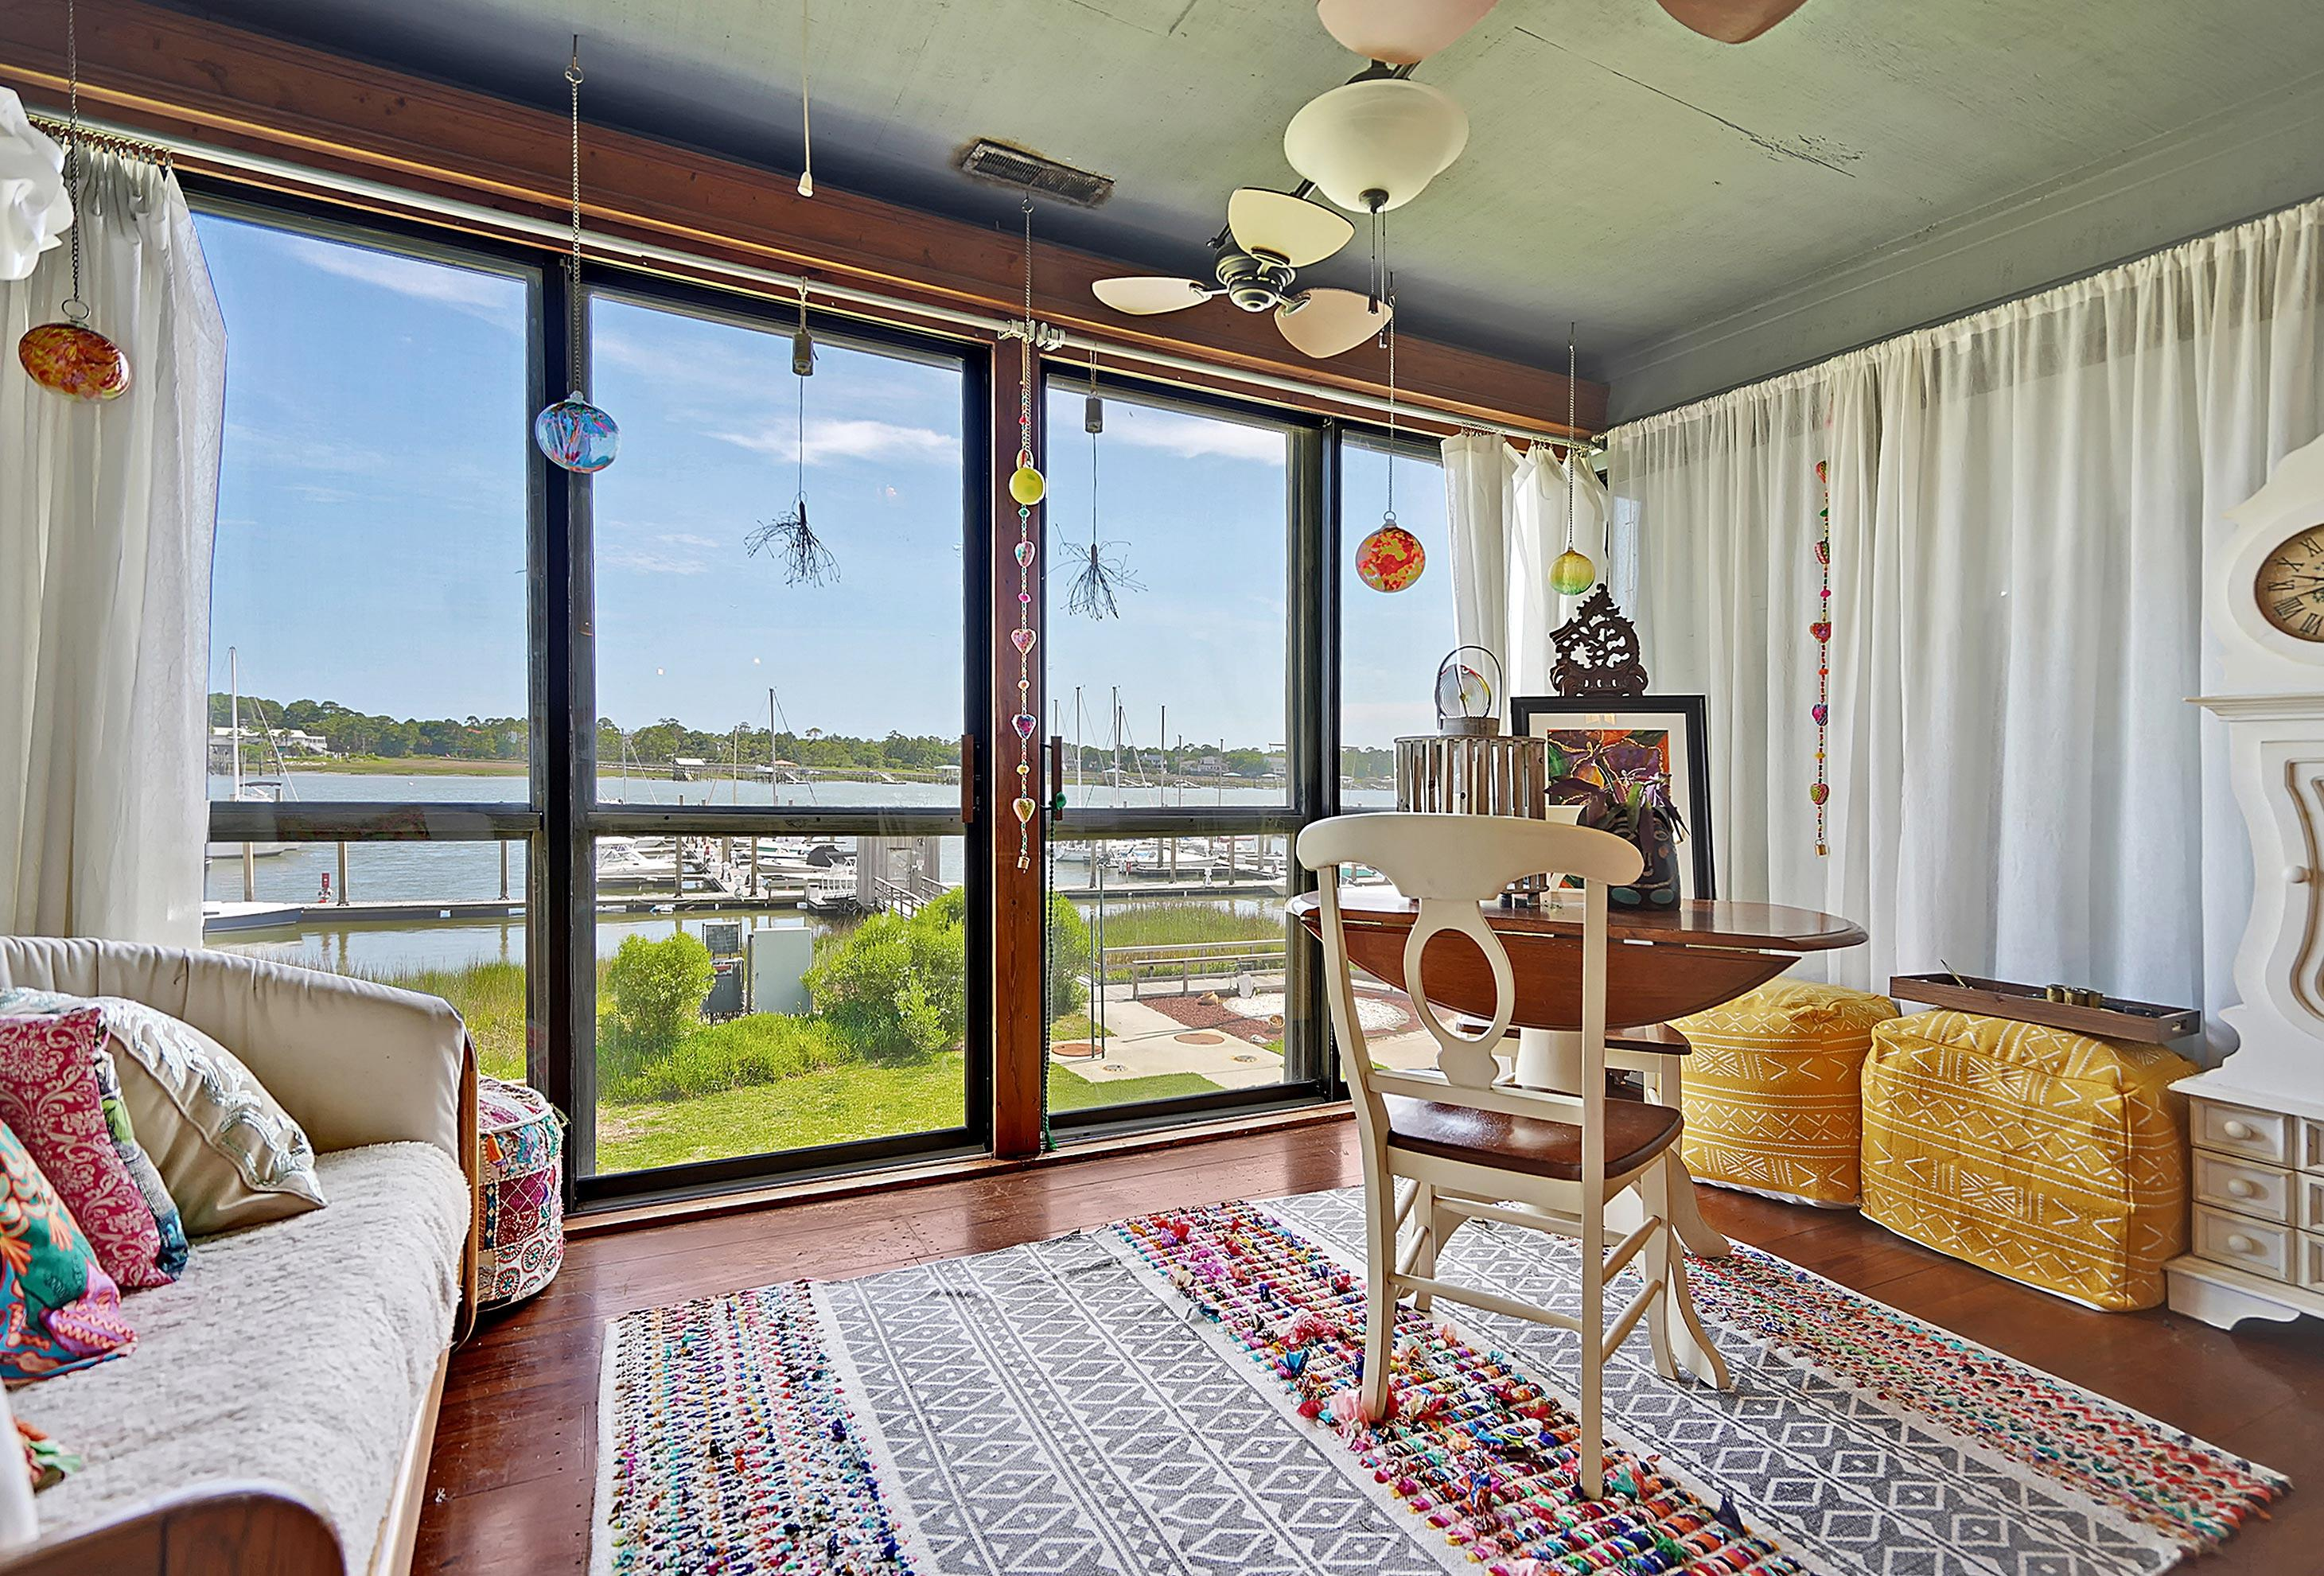 Mariners Cay Homes For Sale - 63 Mariners Cay, Folly Beach, SC - 3